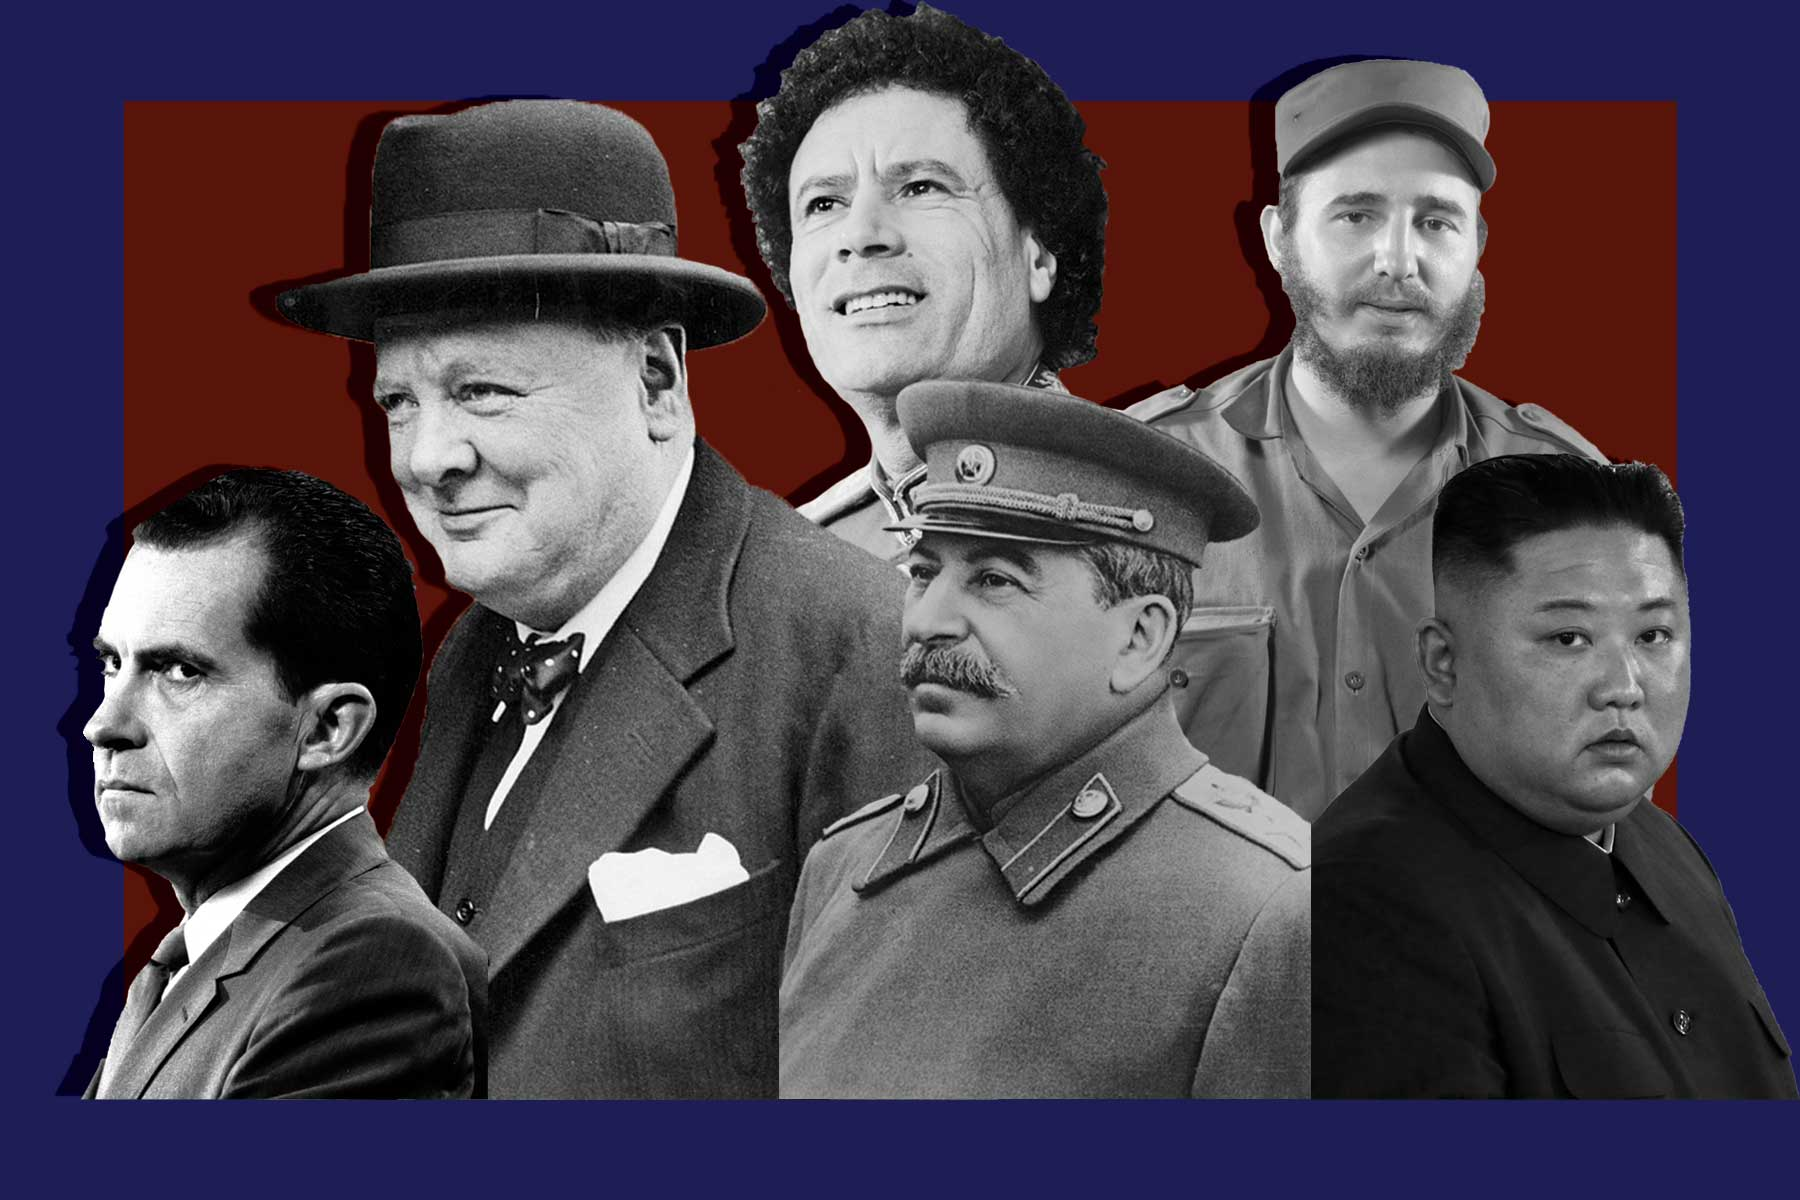 Portraits of historical world leaders. Showing Richard Nixon, Winston Churchill, Joseph Stalin, Fidel Castro and Kim Jong-Un